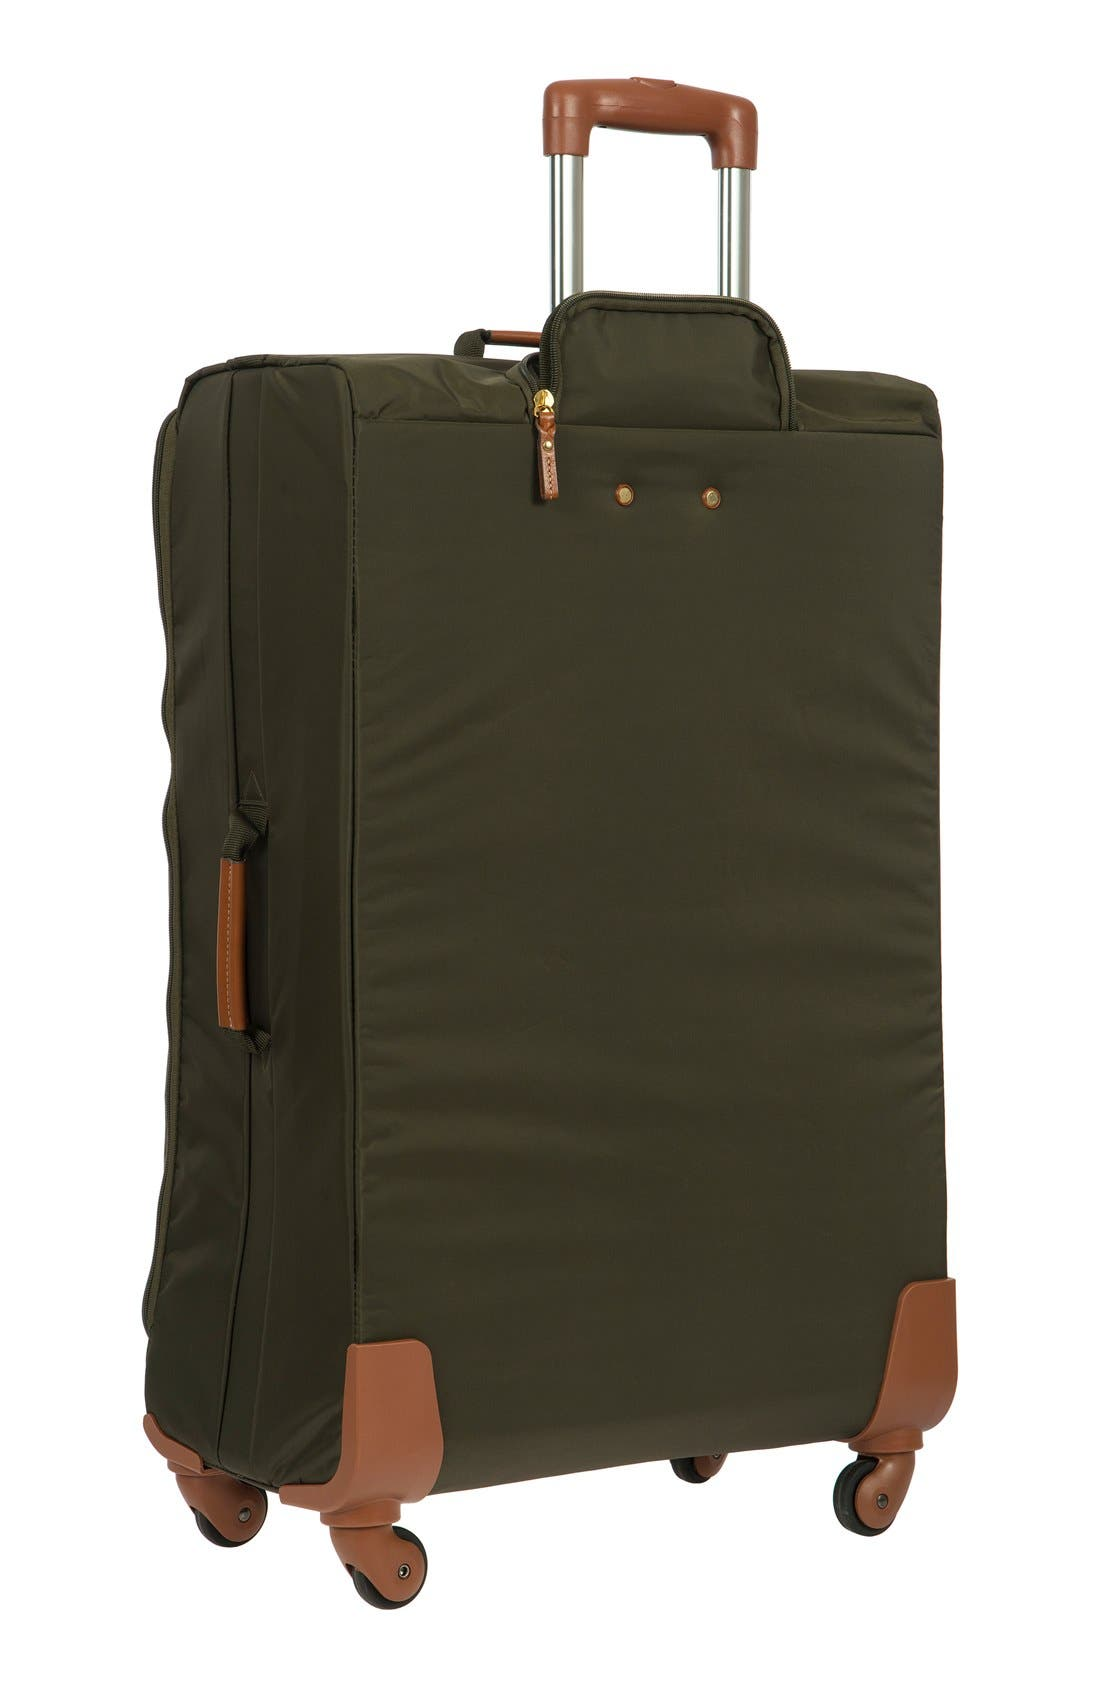 X-Bag 30-Inch Spinner Suitcase,                             Alternate thumbnail 12, color,                             OLIVE